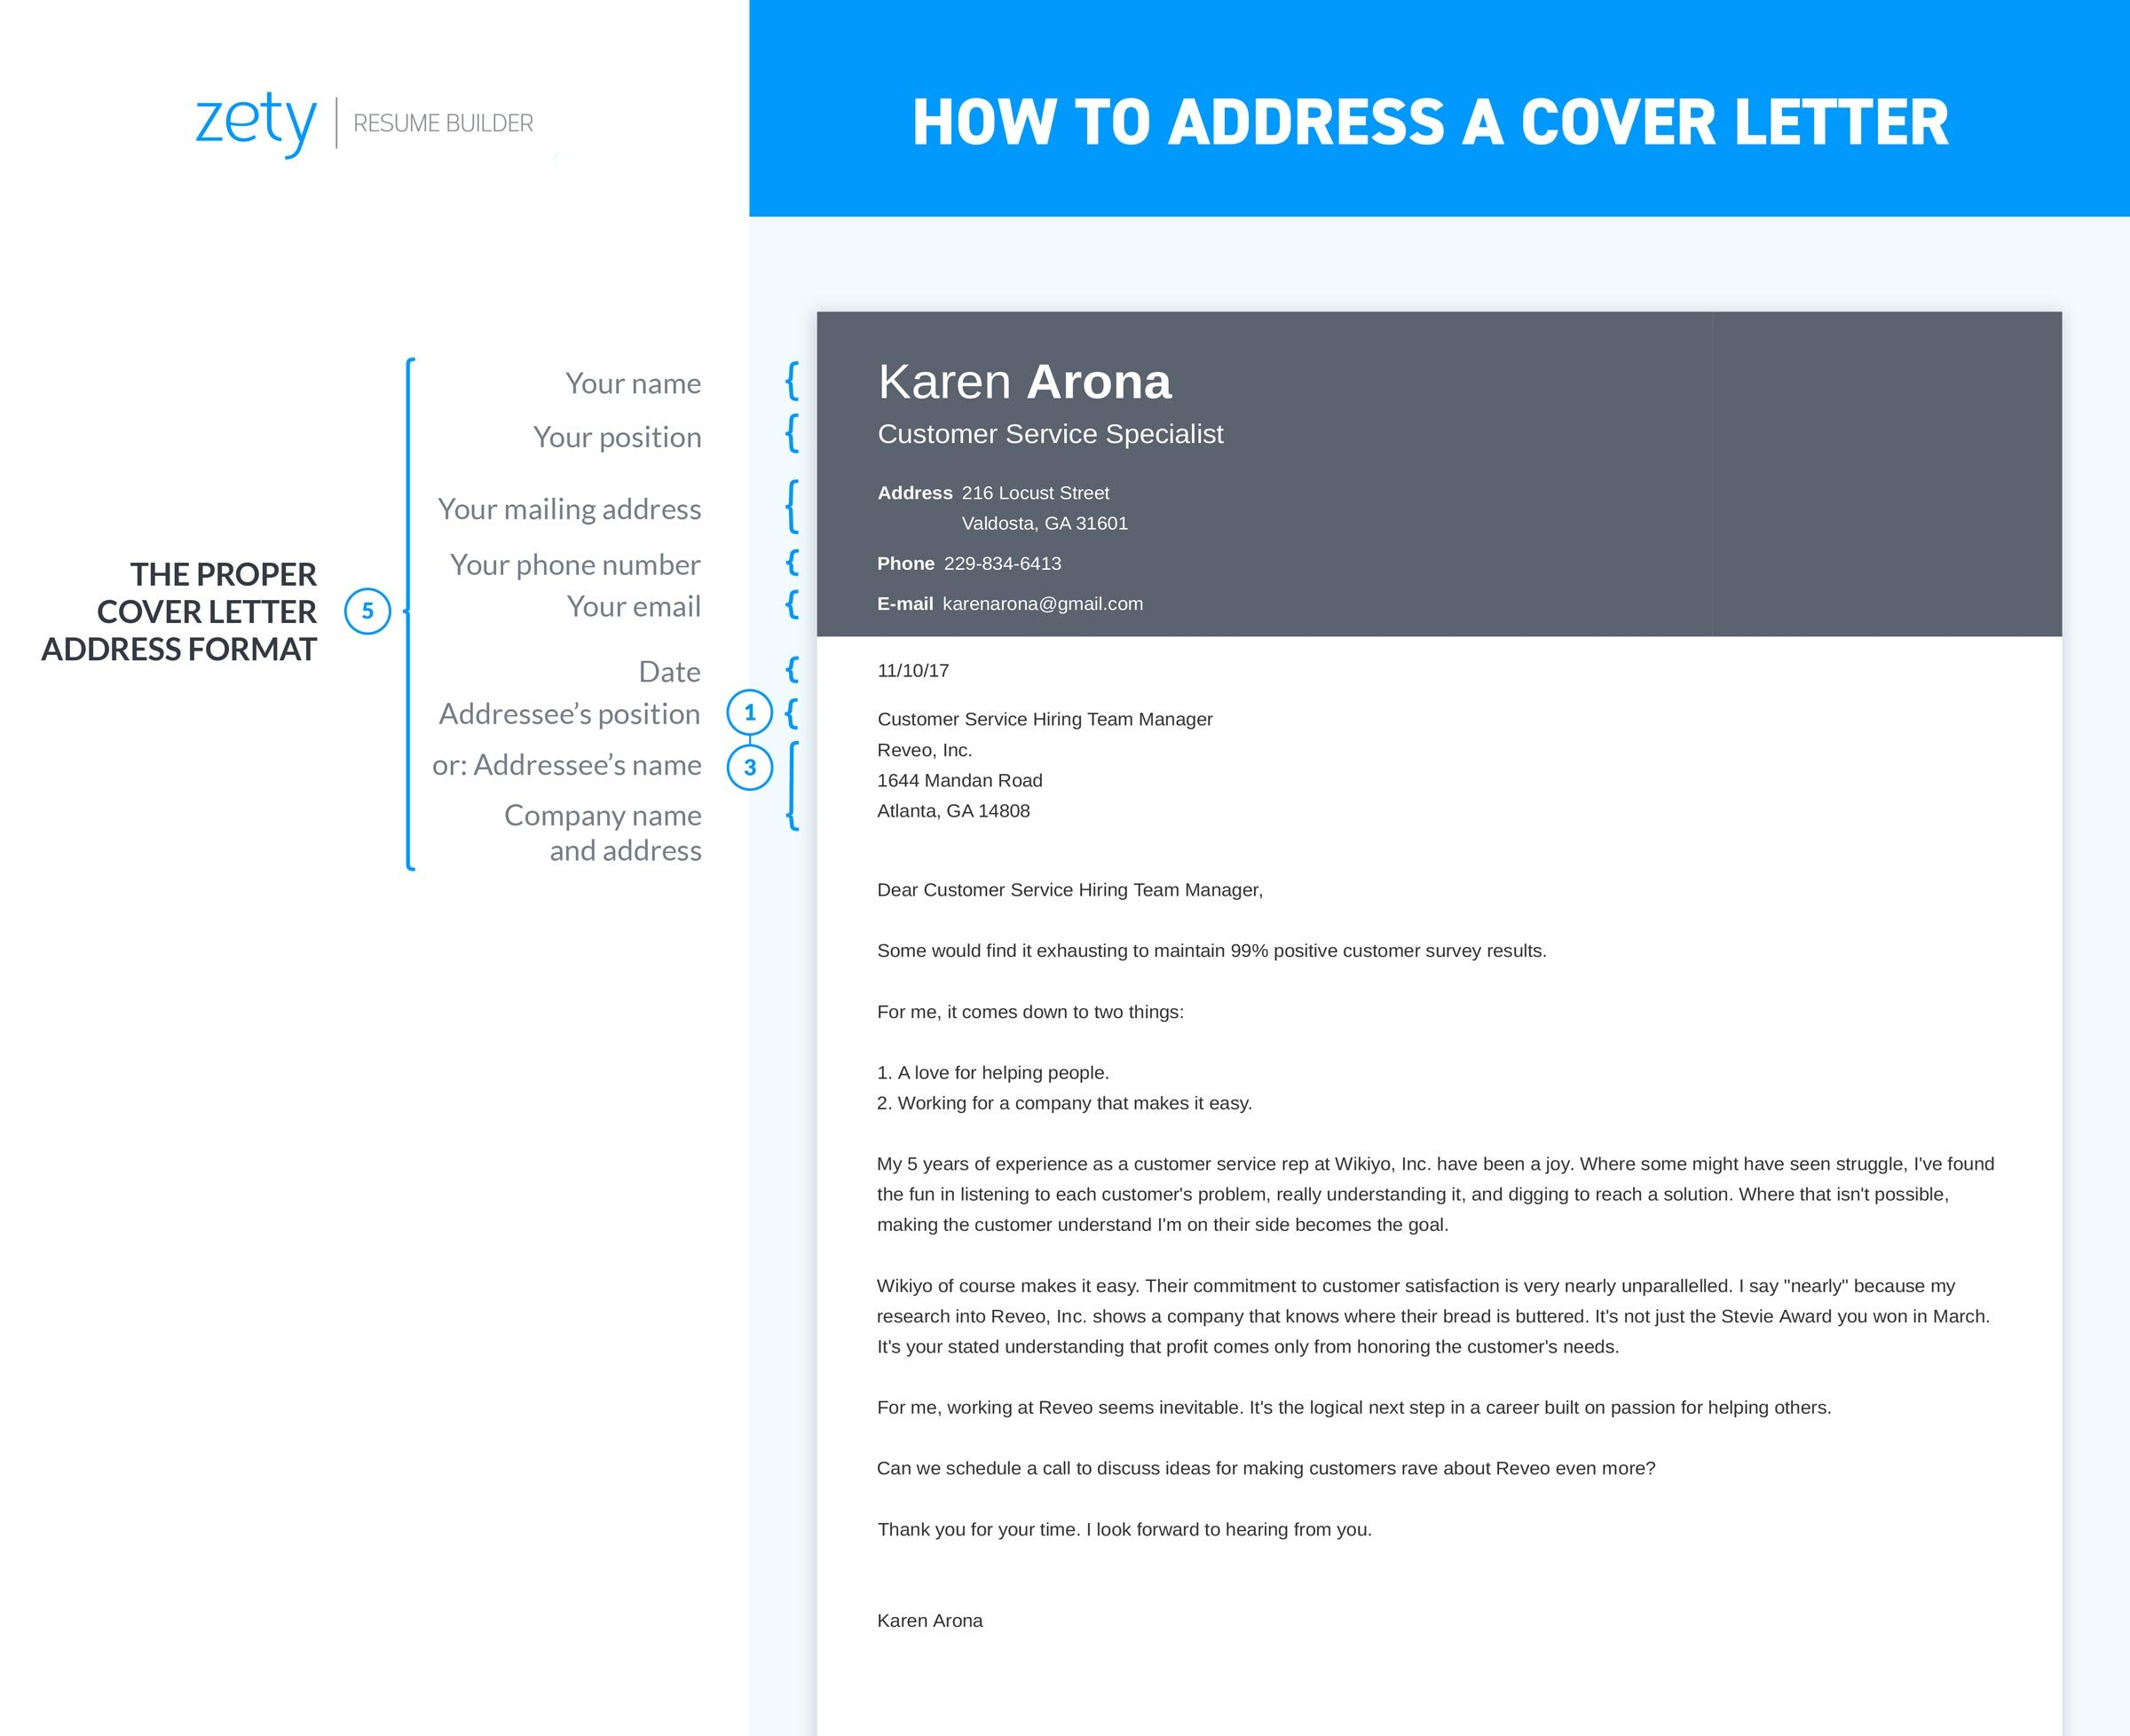 how to address a cover letter  and who should it be to